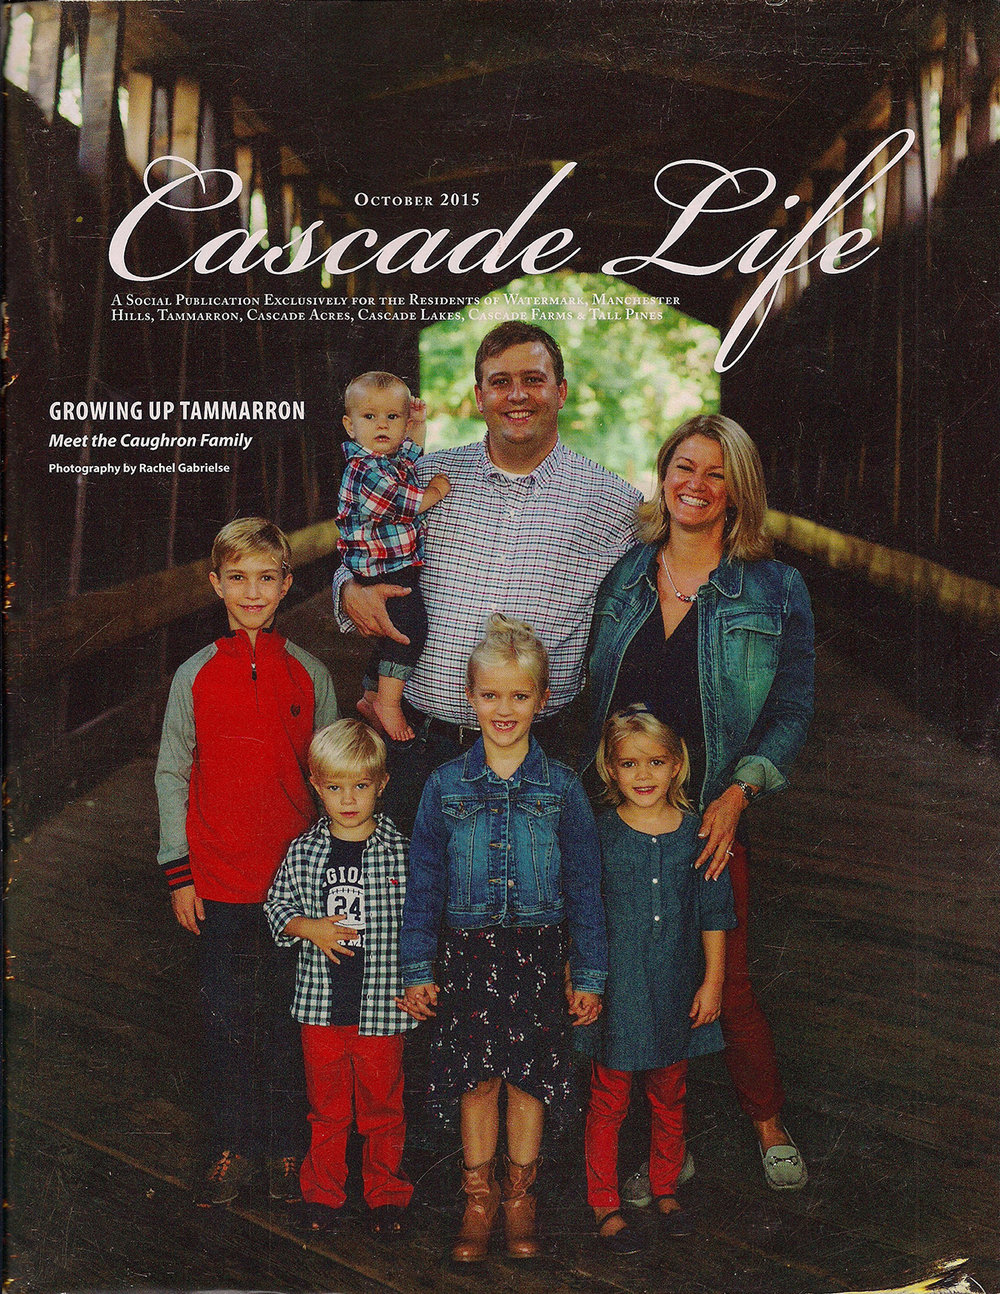 Oct2015-CascadeLife-cover.jpeg